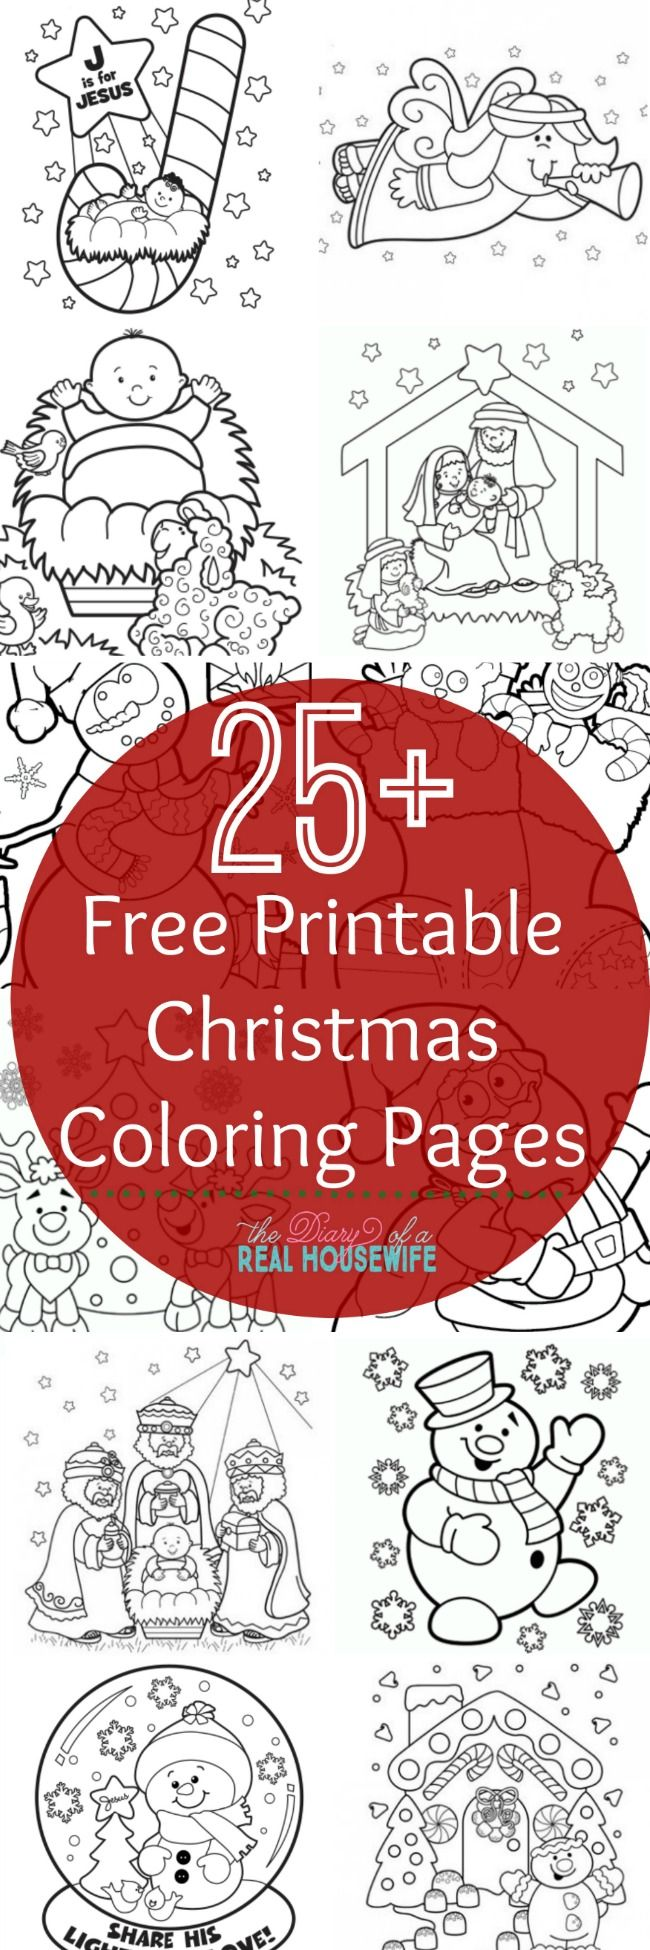 Free Printable Christmas Coloring Pages | Bible Stories and ...